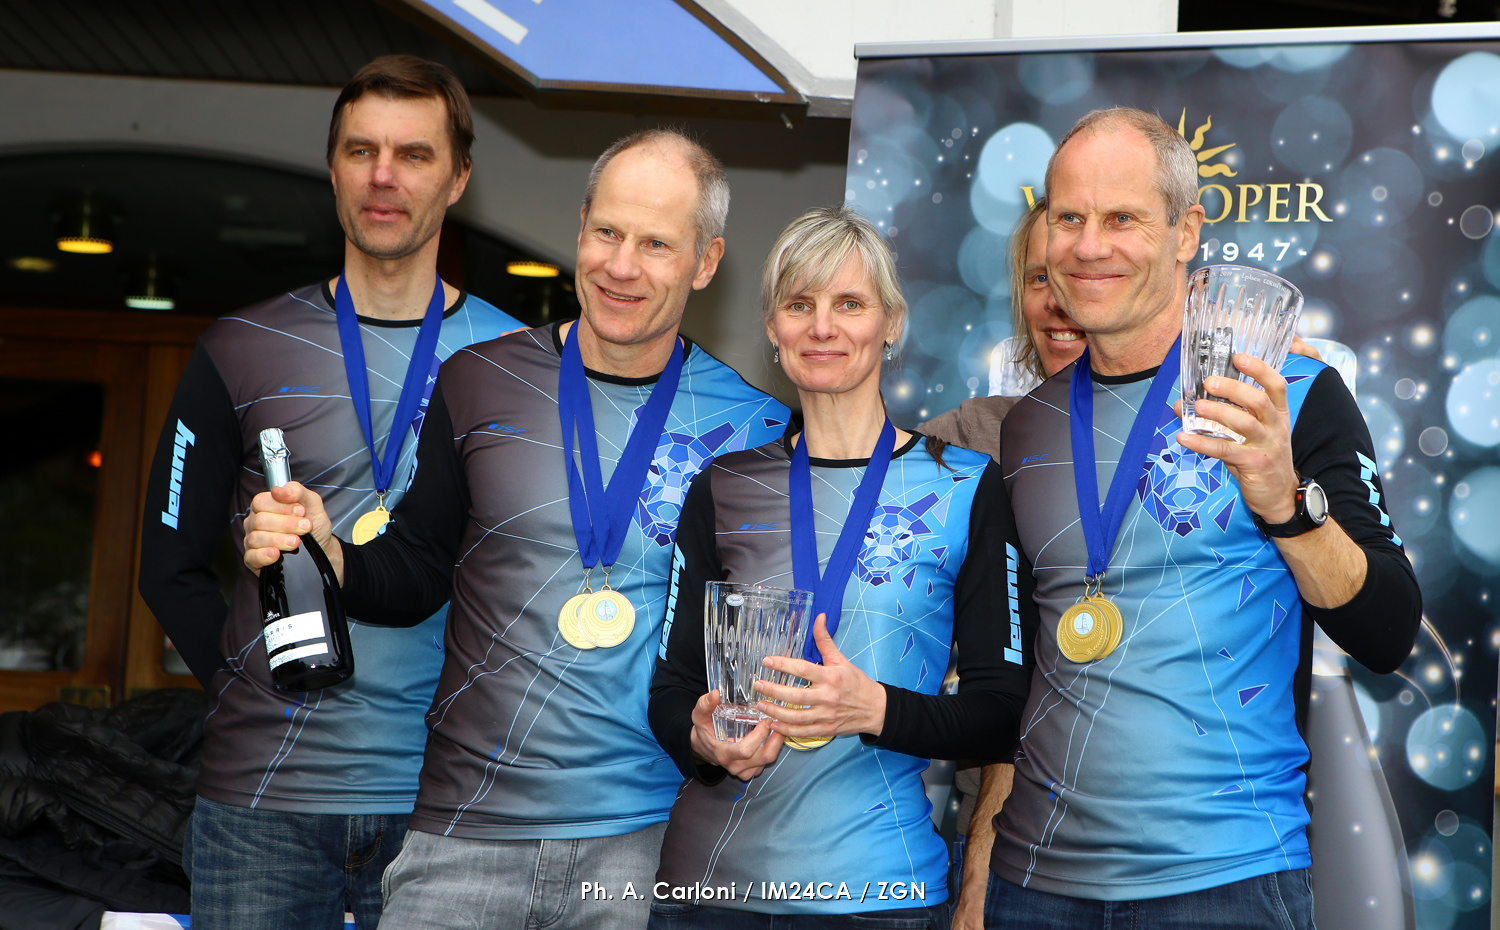 ESTONIAN TEAM LENNY SCORES ITS FIRST VICTORY IN THE EUROPEAN SAILING SERIES IN PORTOROŽ